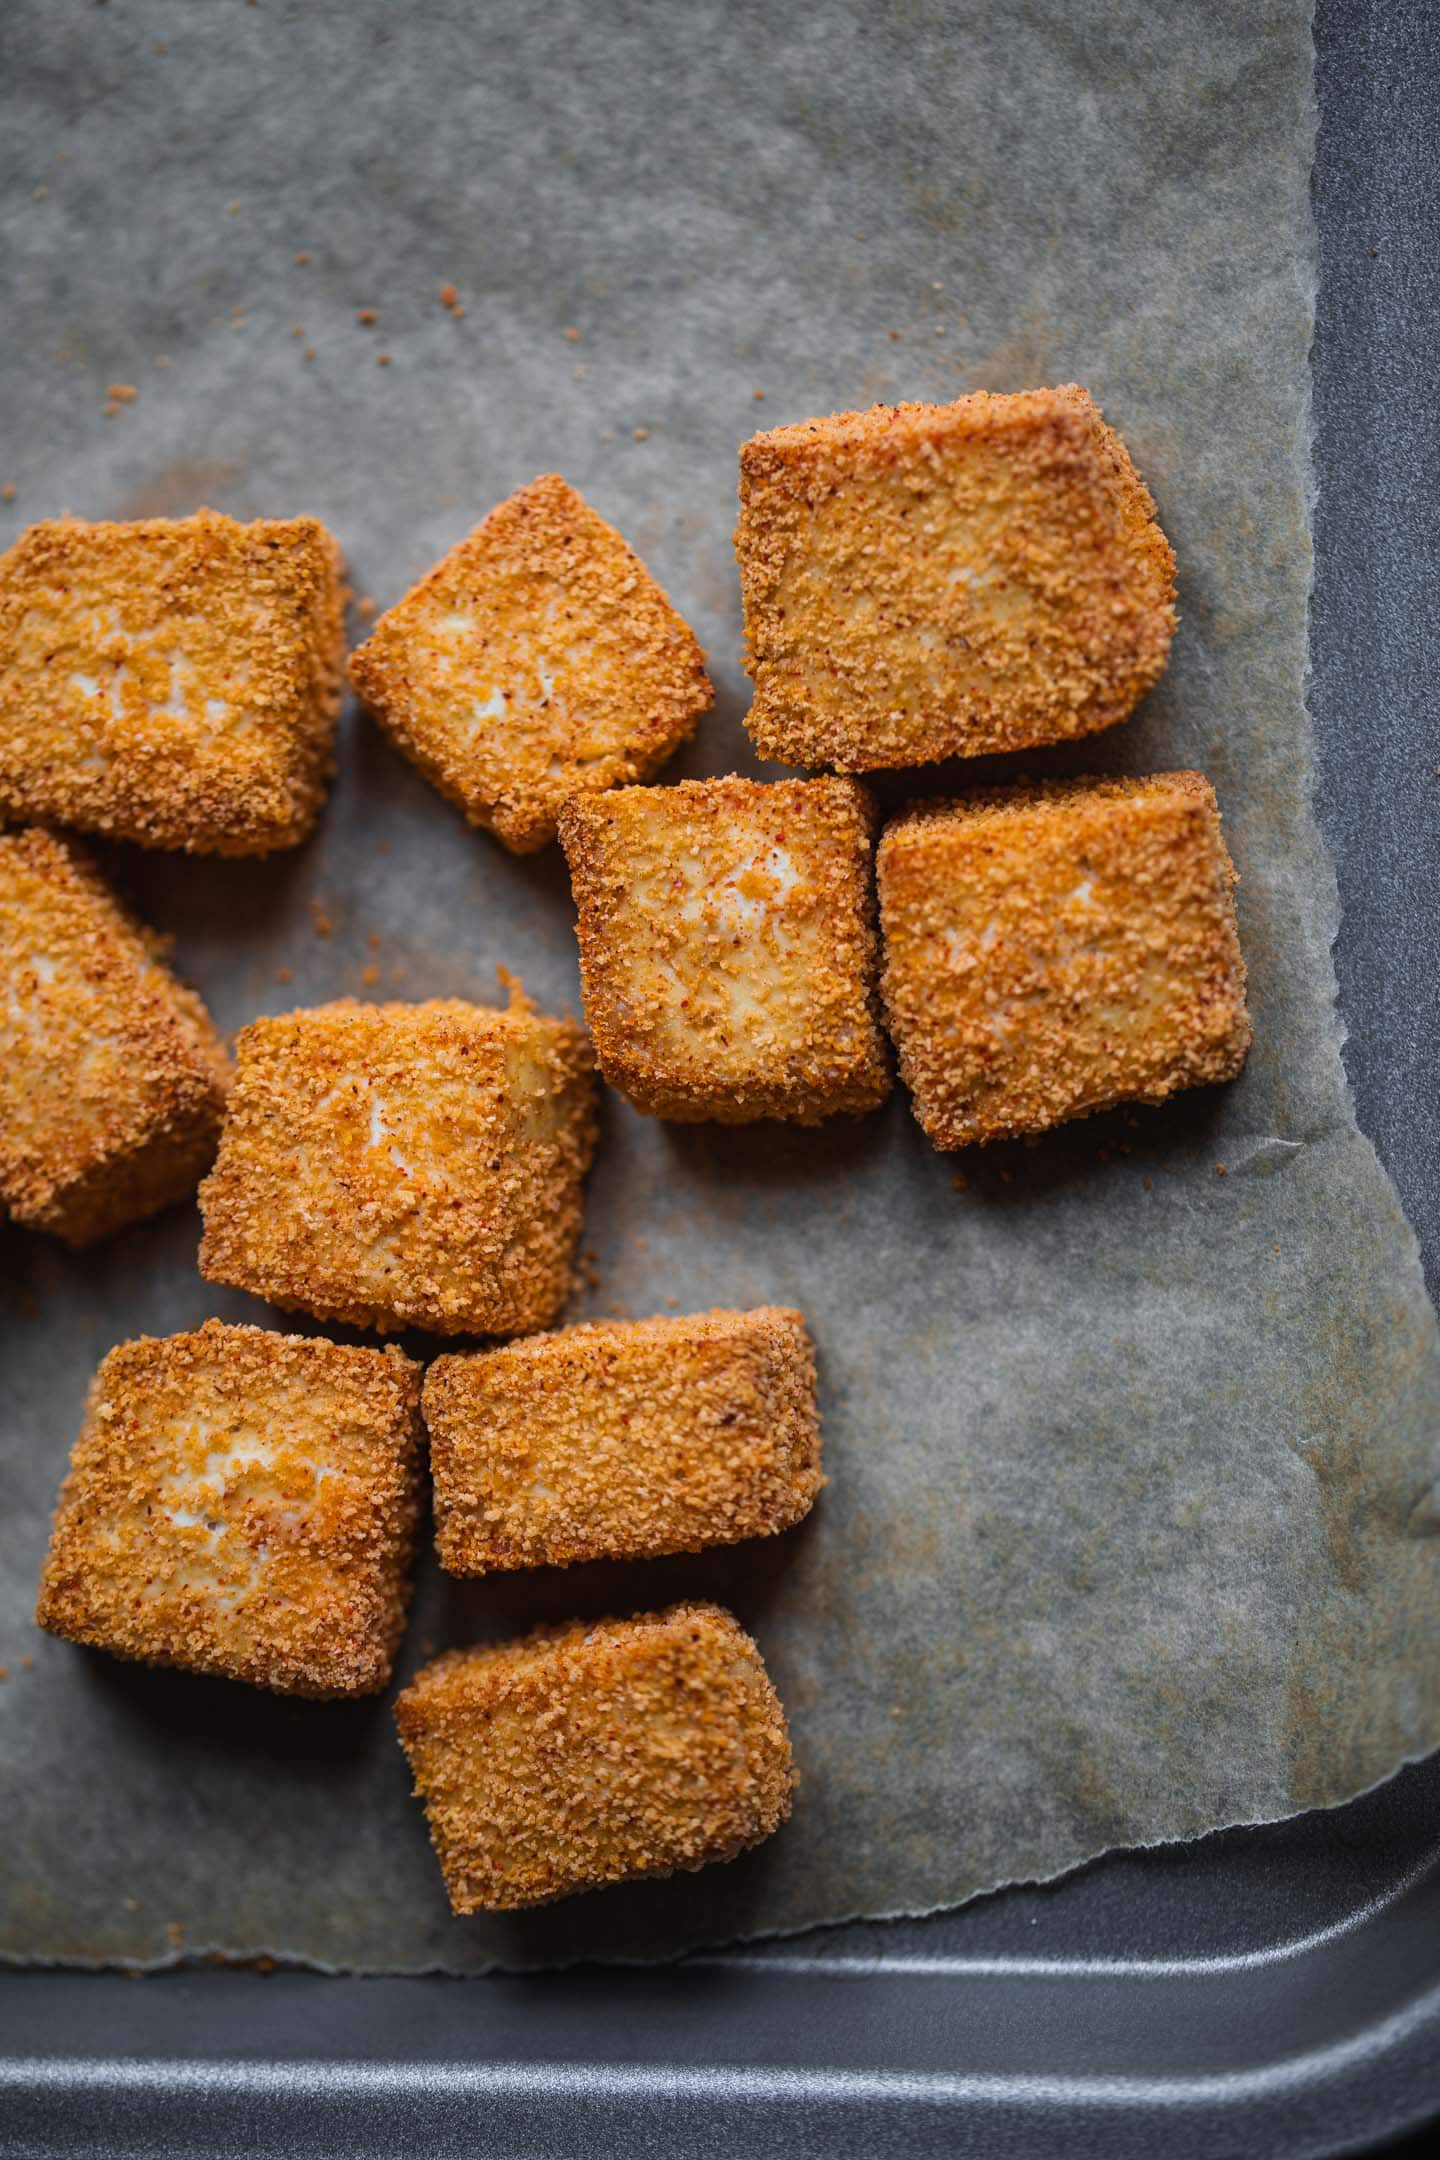 Baked tofu cubes on a baking tray